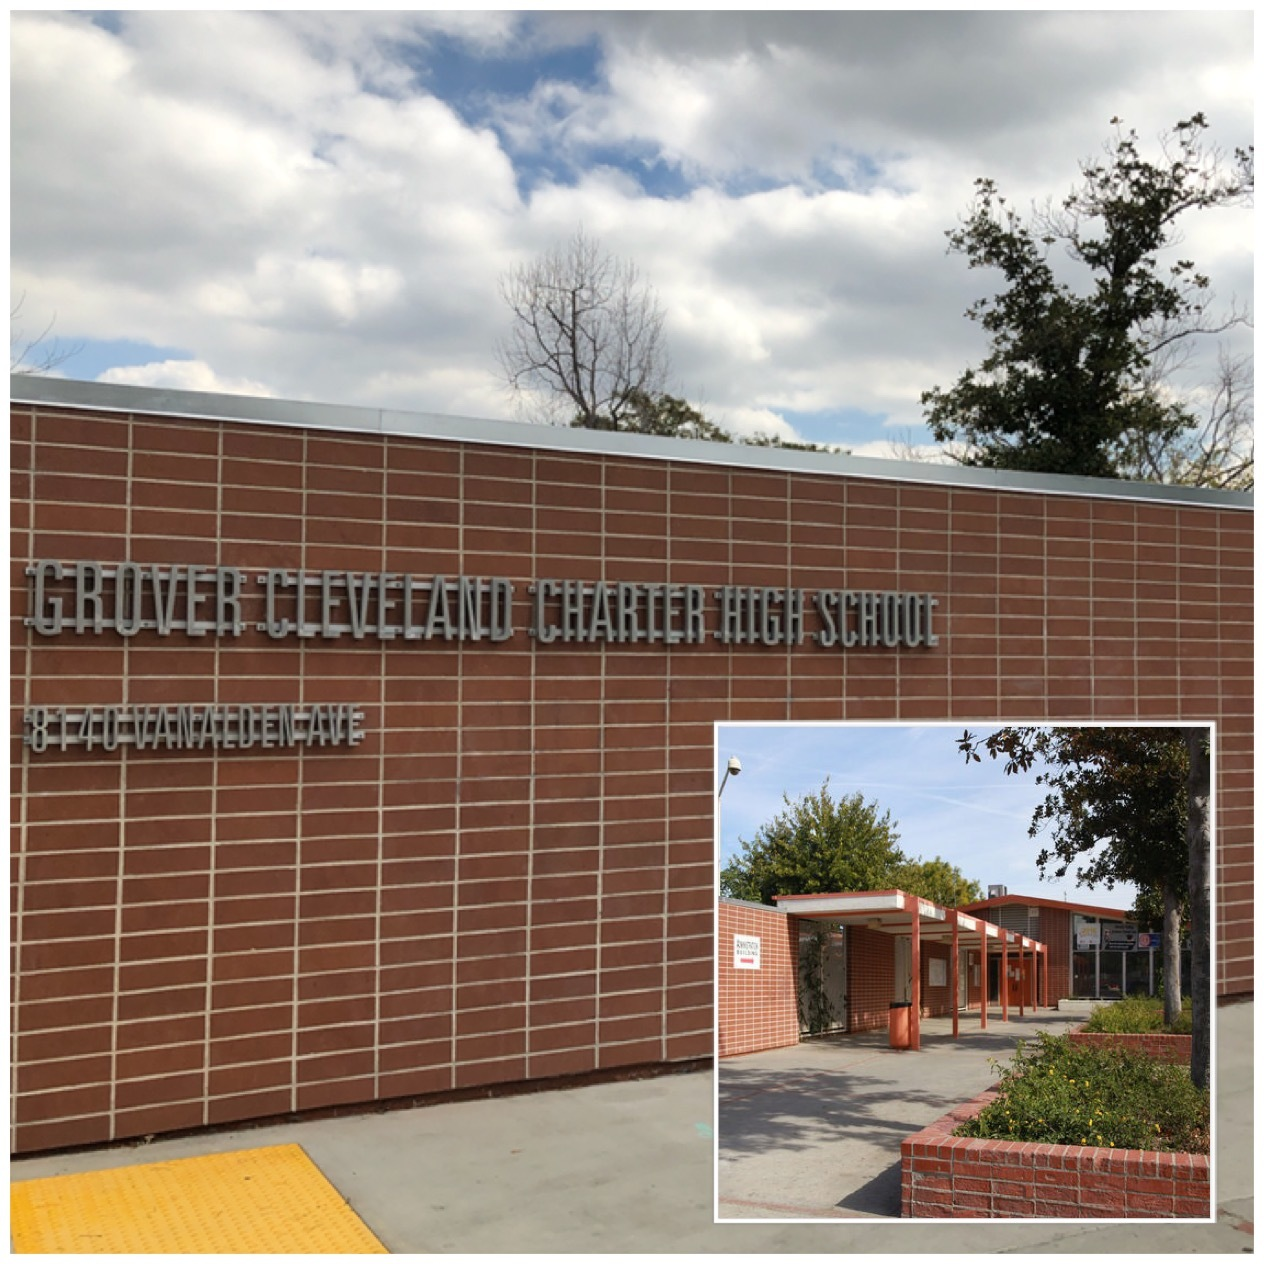 Grover Cleveland Charter High School Lausd School Search